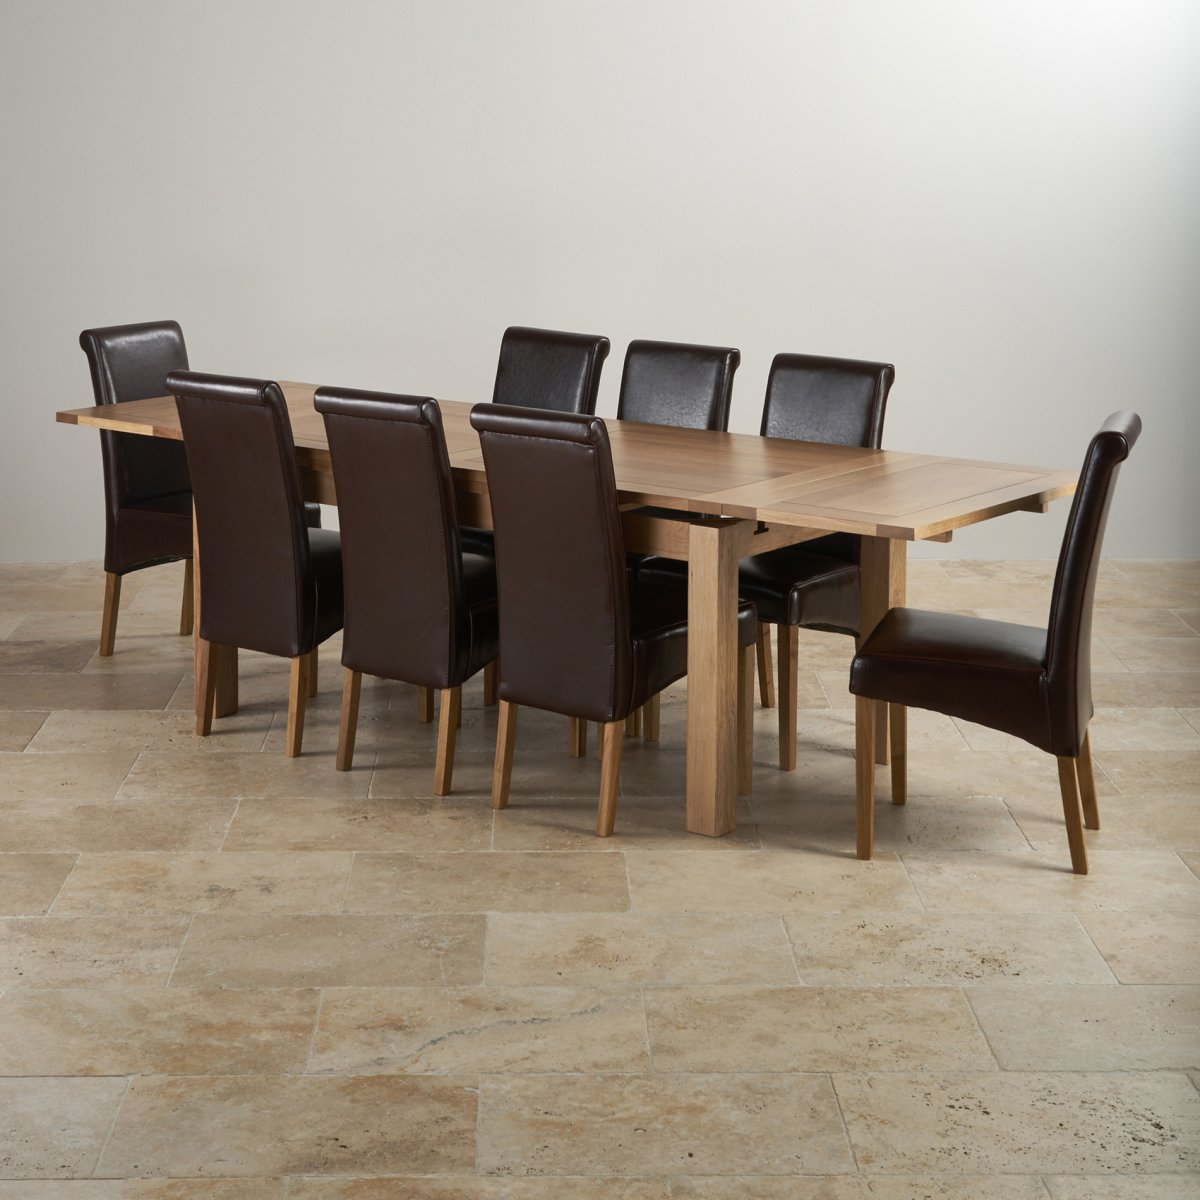 Dorset Oak Dining Set 6ft Table with 8 Chairs : dorset natural solid oak dining set 6ft extending table with 8 scroll back brown leather chairs 56f3f52a43a49e46a33e08cd0d4e1867b060493b72e19 from www.oakfurnitureland.co.uk size 1200 x 1200 jpeg 154kB